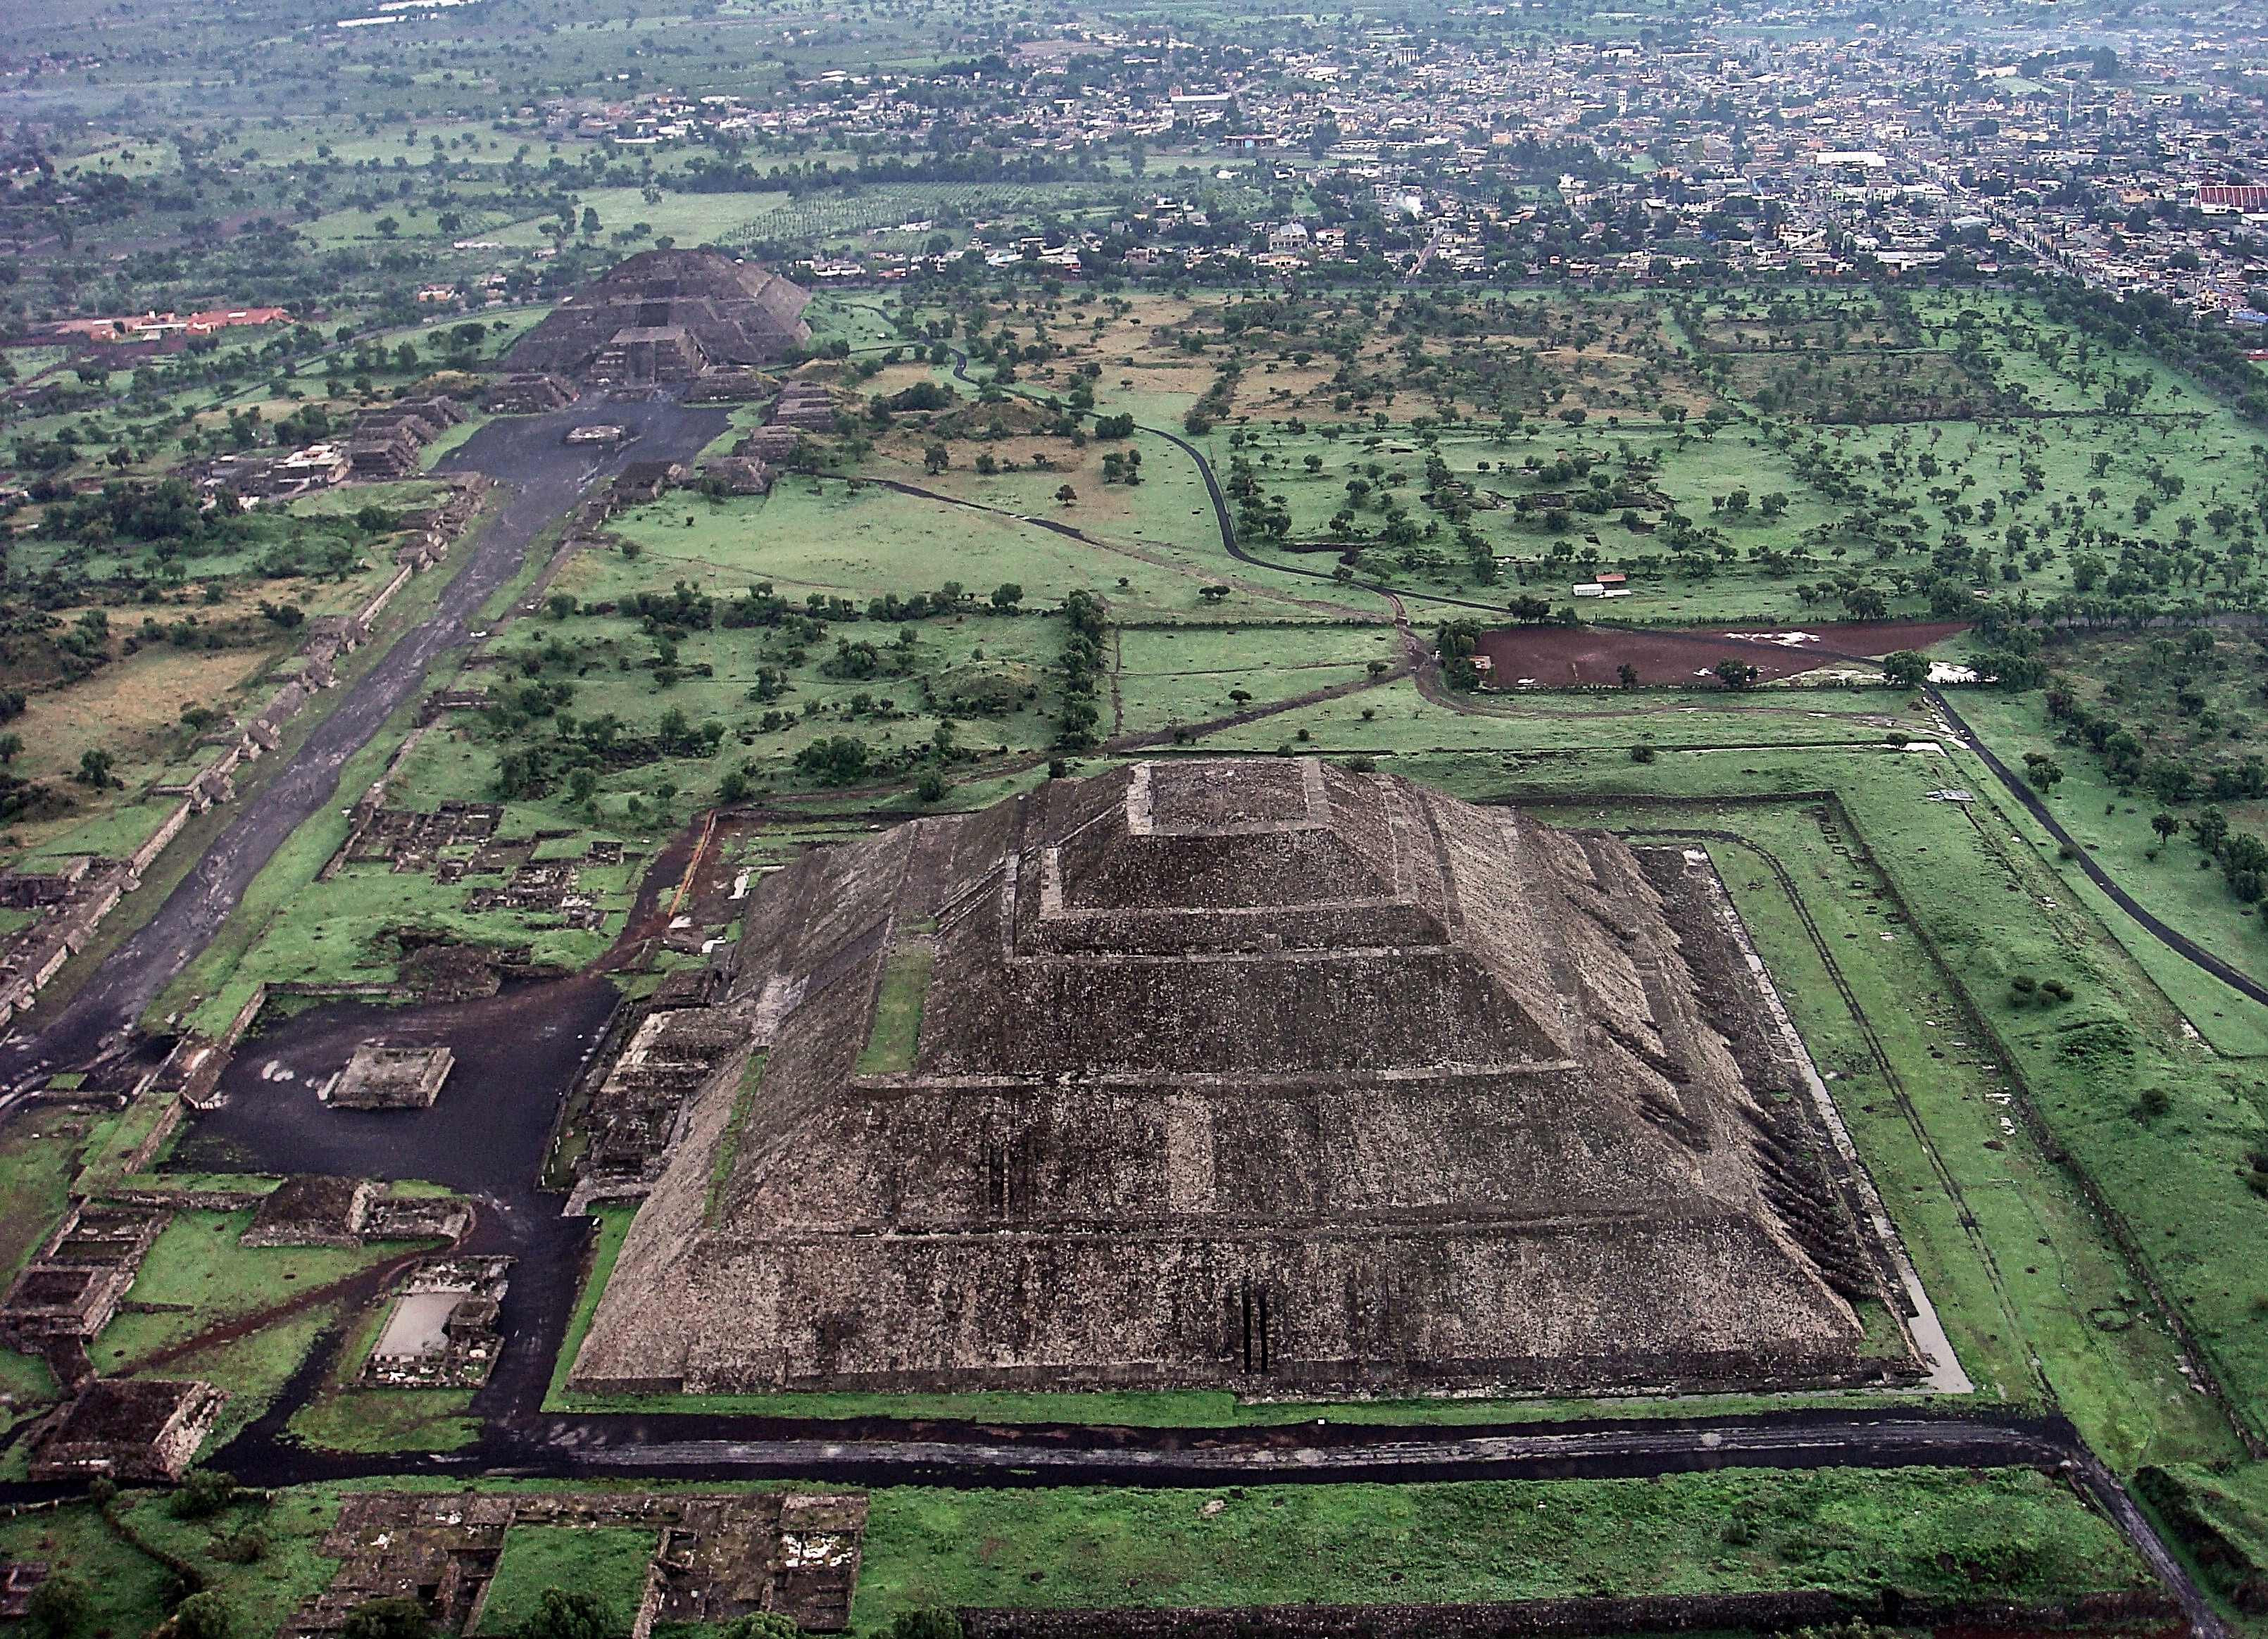 a history and description of teotihuacan Teotihuacan the ancient ruins of teotihuacan (teh-oh-tee-wa-can) have fascinated visitors for centuries this amazing archaeological treasure is located on the central highland plateau of mexico, surrounded by mountains and much mystery.